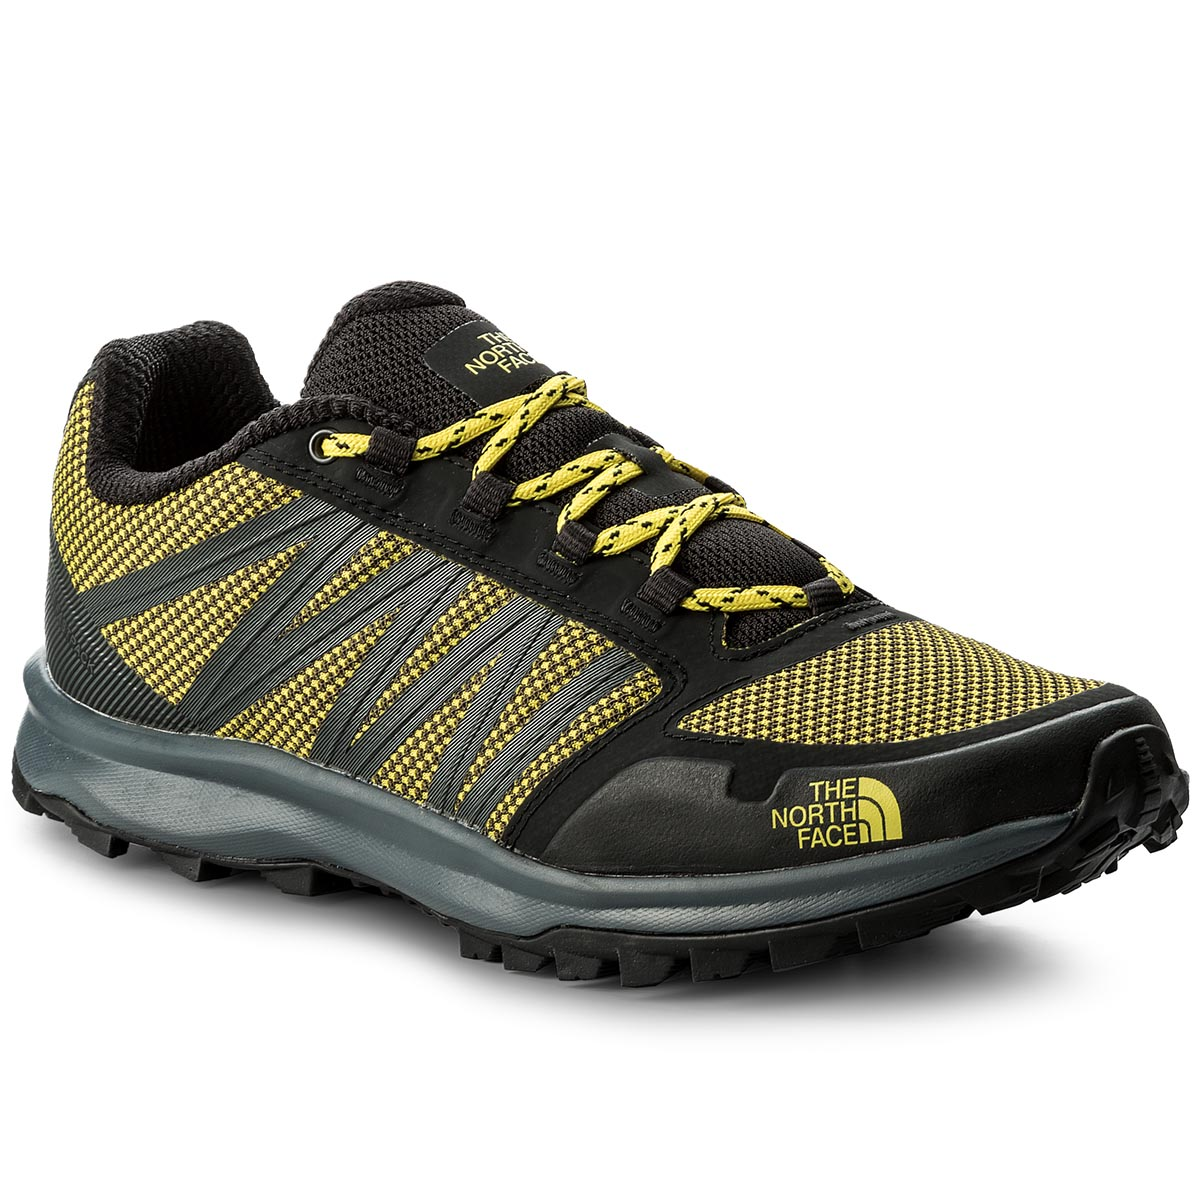 Trekkings THE NORTH FACE - Litewave Fastpack T93FX6AFZ Tnf Black/Blazing Yellow